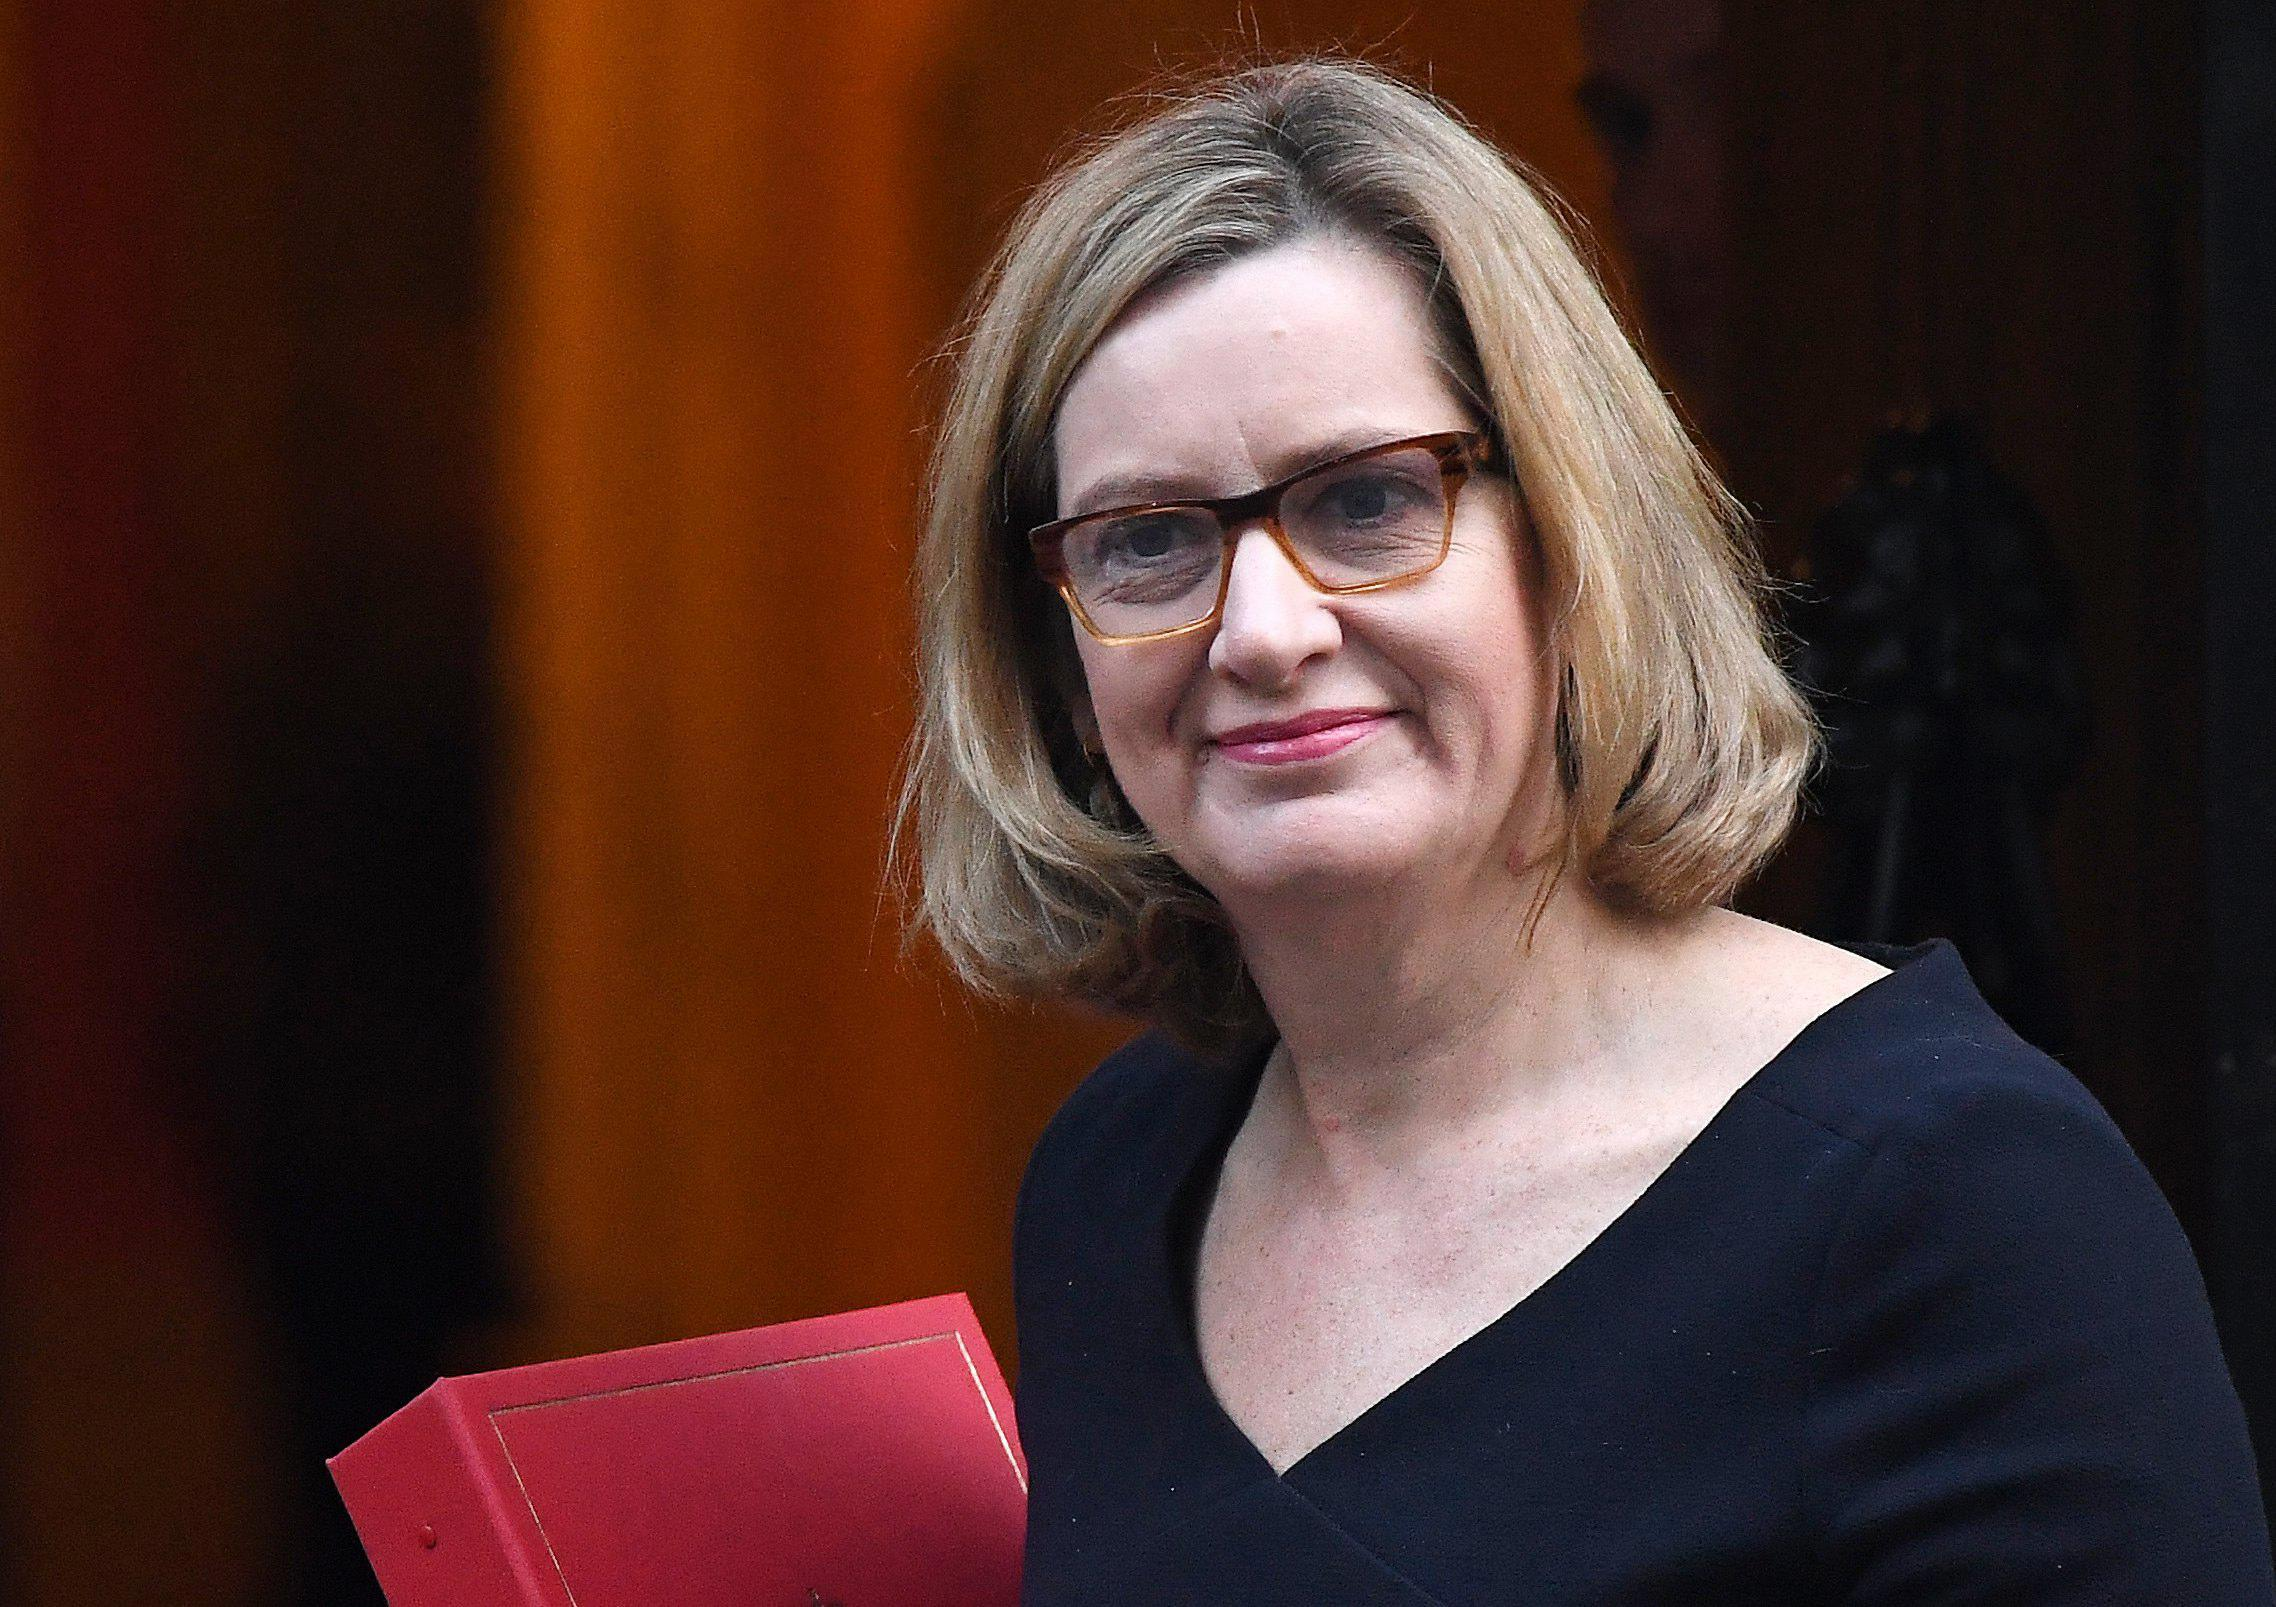 Home Secretary Amber Rudd considering a public inquiry into the Poppi Worthington case